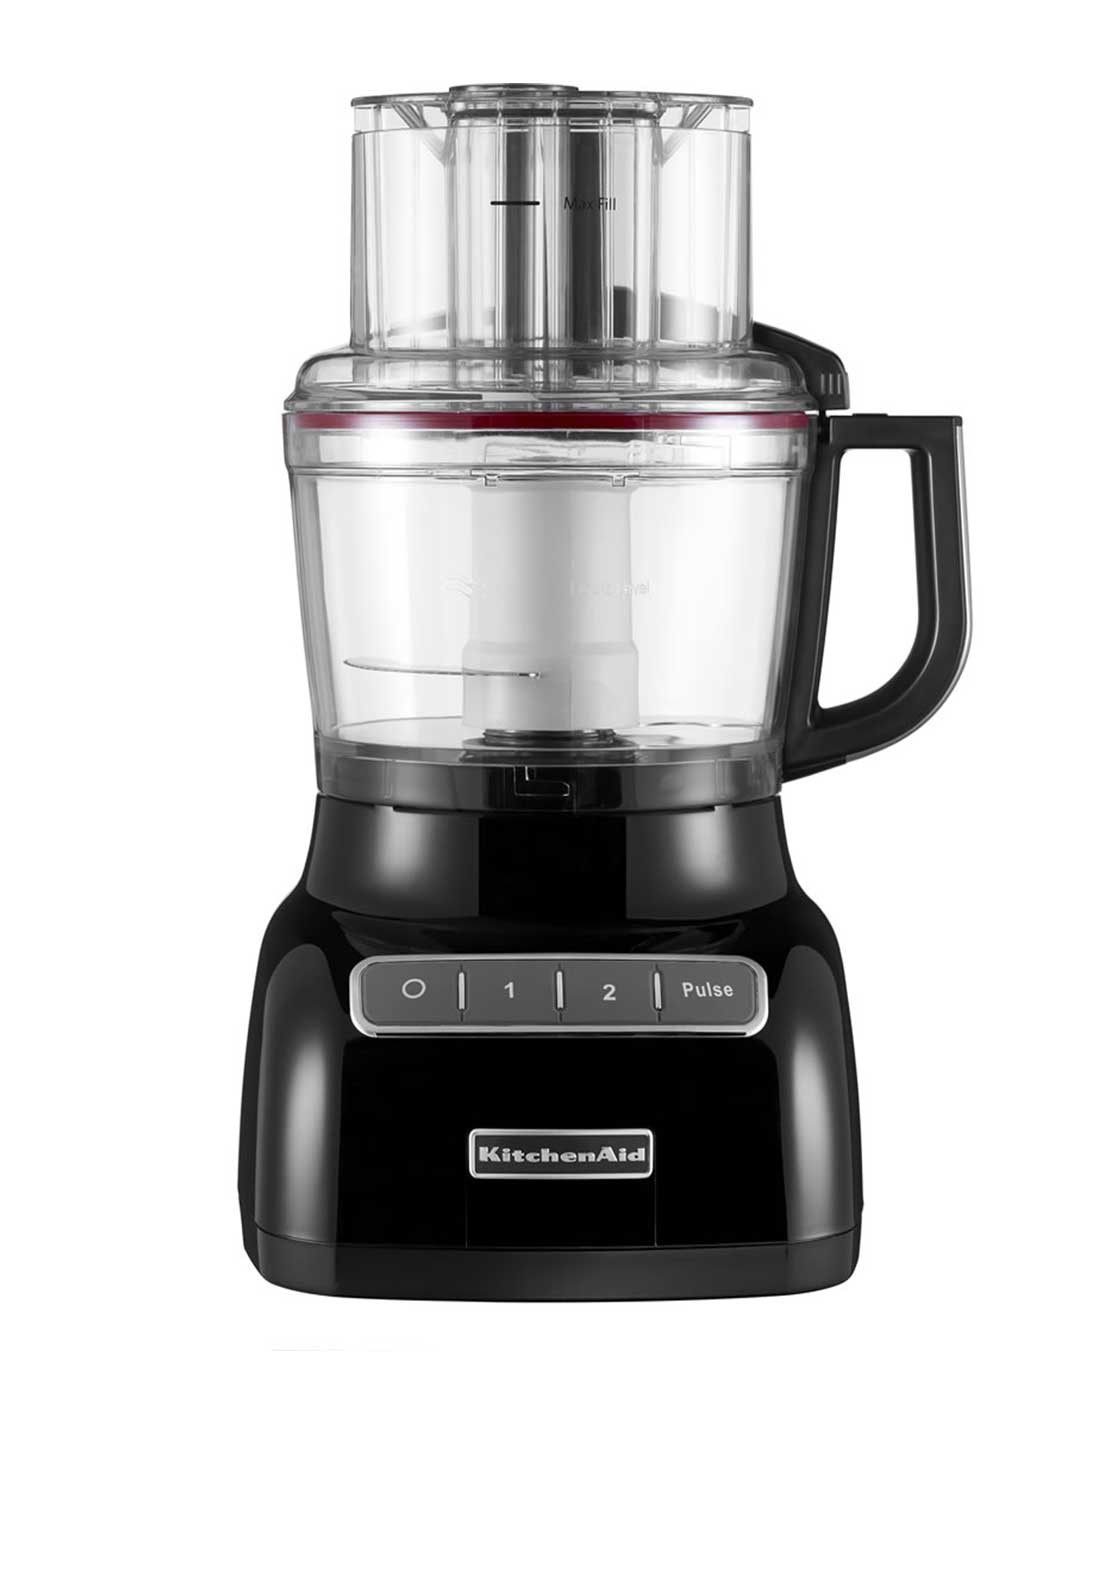 KitchenAid 3.1 Litre Food Processor, Onyx Black